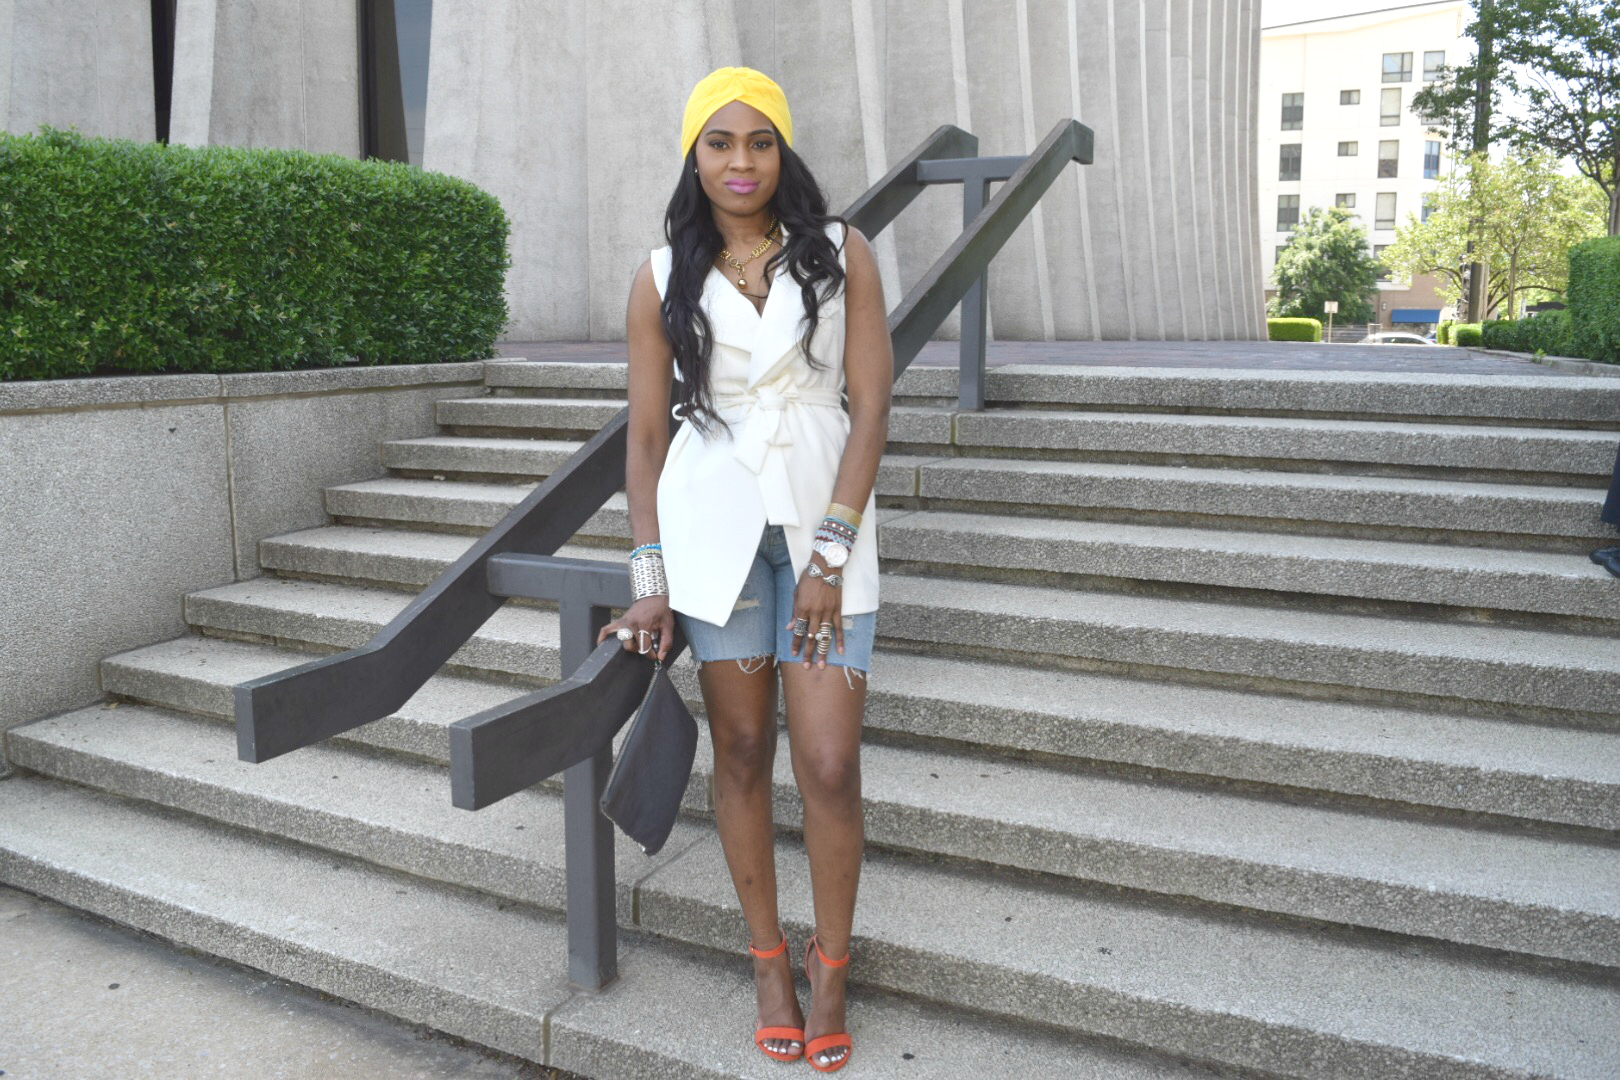 Style-Files-Forever 21-White-Longline Belted-Vest-Mossimo-Denim-Distressed--shorts-Justfab-Orange-heel-kati-sandals-yellow-turban-mirror-sunglasses-oohlalablog-2